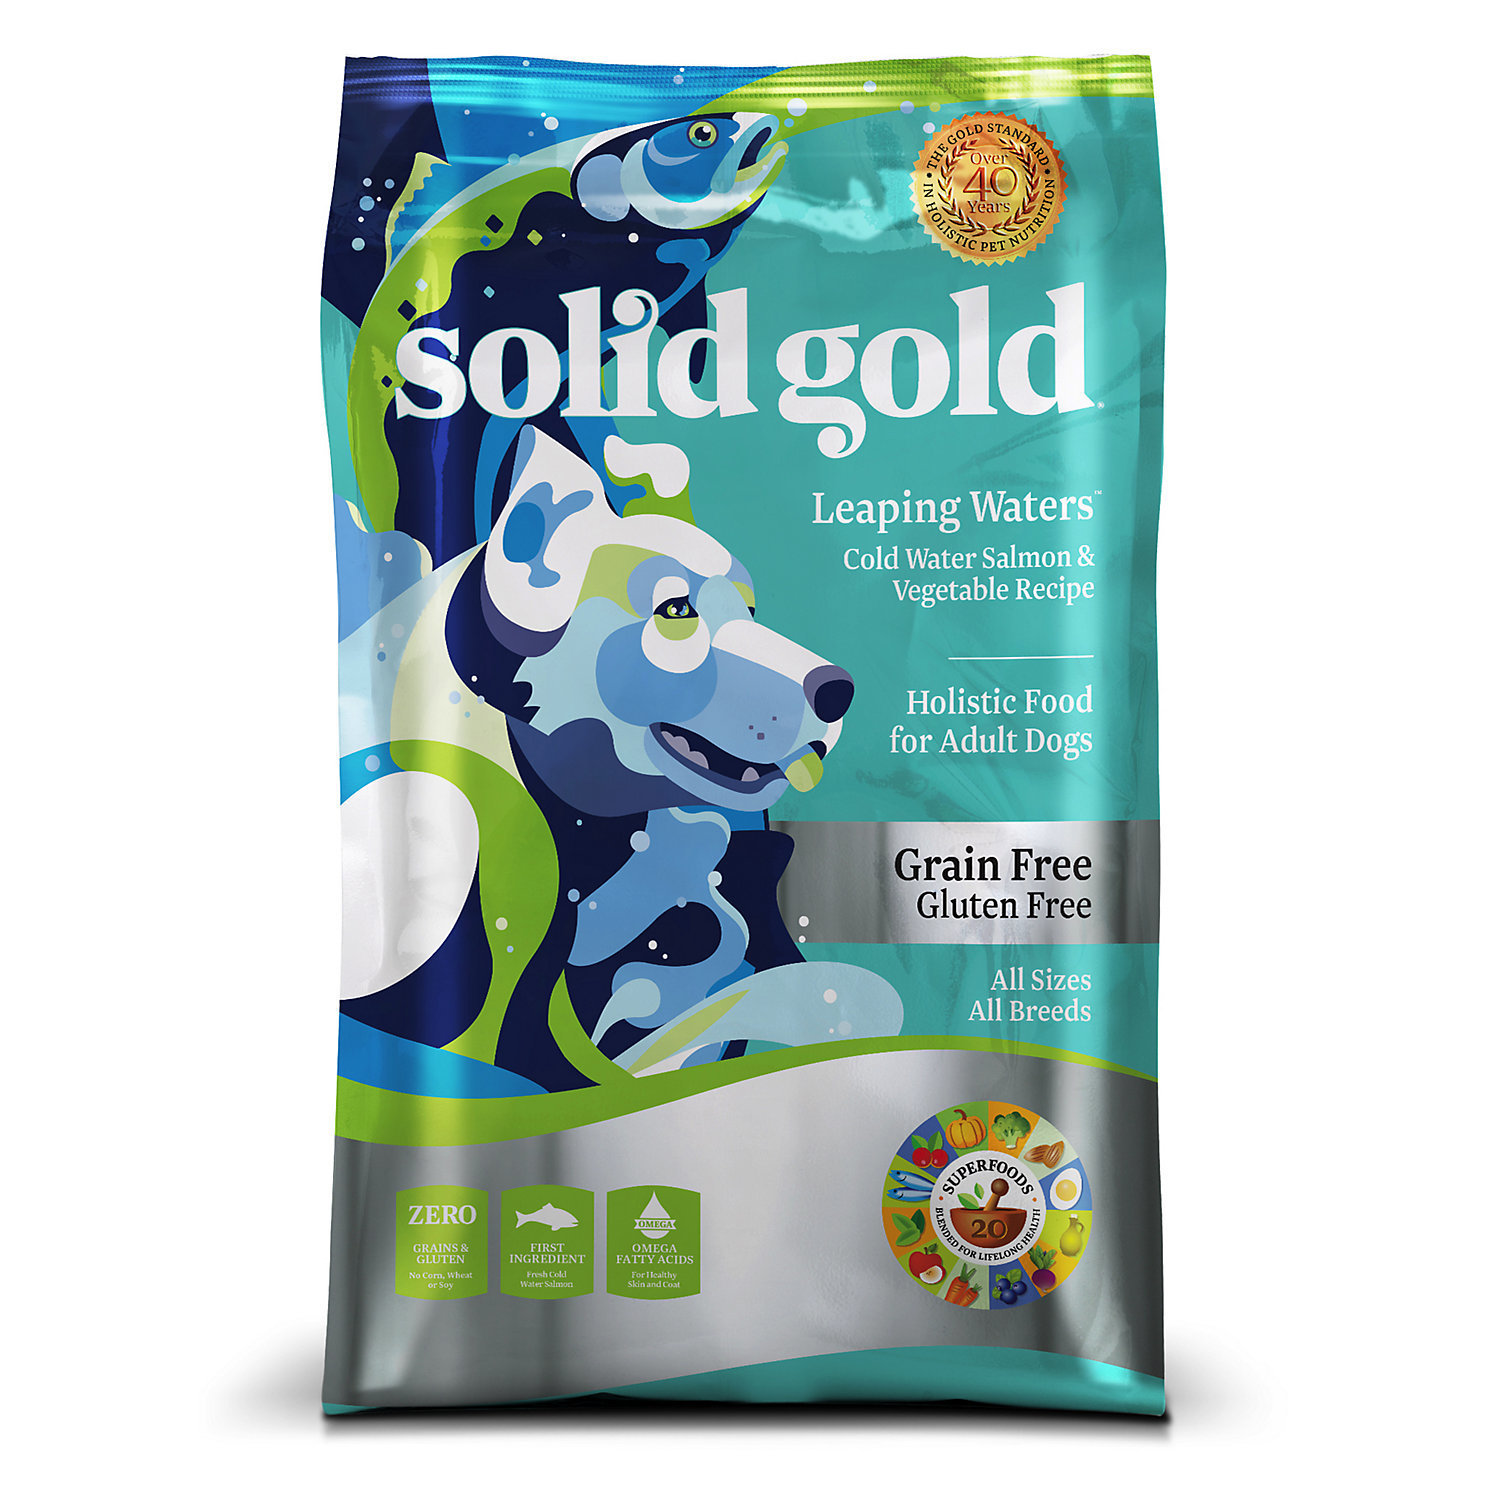 Solid Gold Leaping Waters Salmon & Vegetable Grain Free Adult Dog Food, 4 lbs. (3/19) (A.M3)